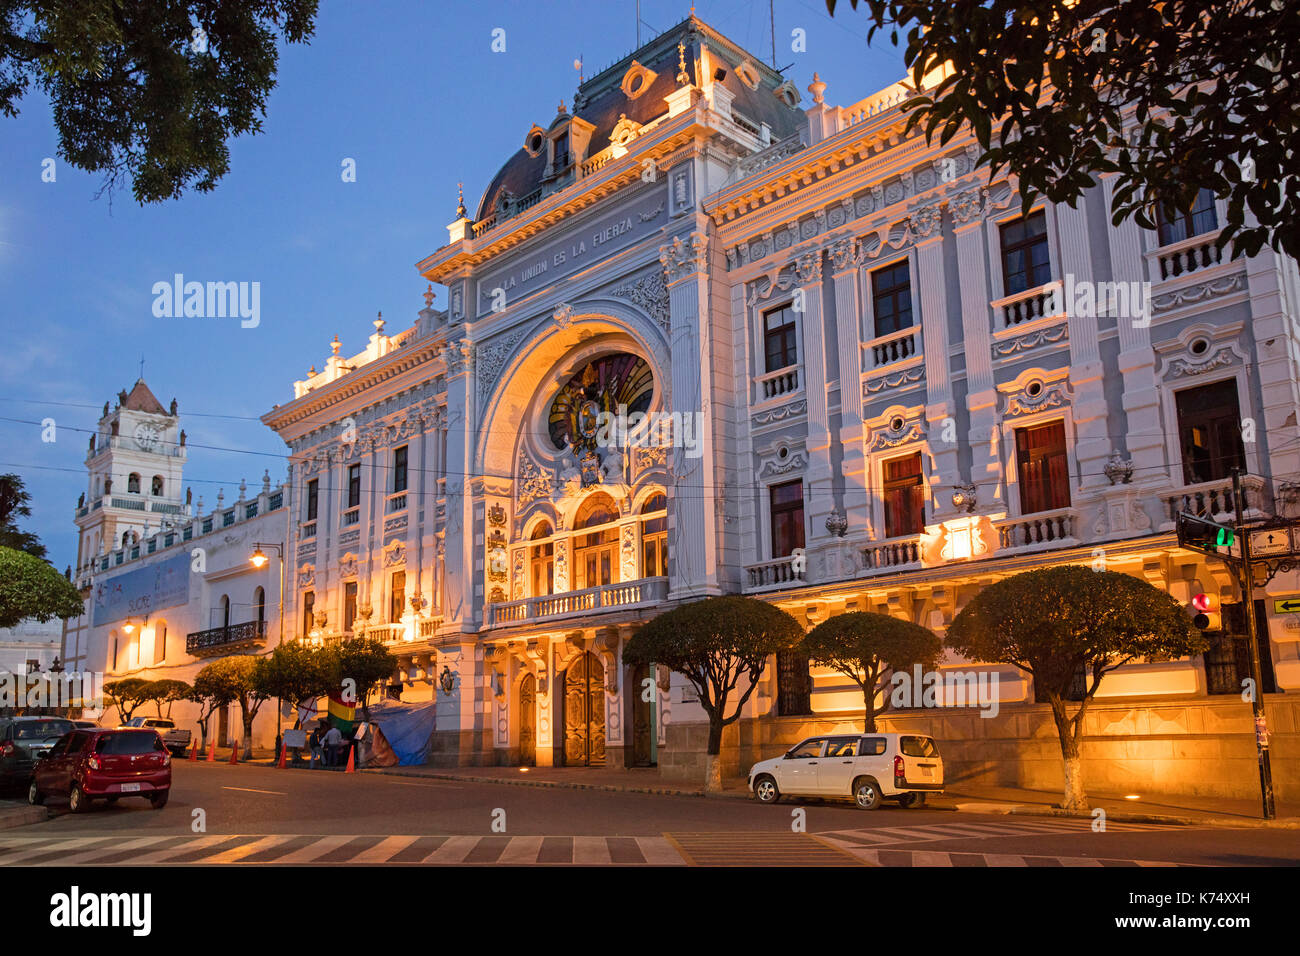 Chuquisaca Governorship Palace in republican architecture style in the city Sucre, constitutional capital of Bolivia Stock Photo